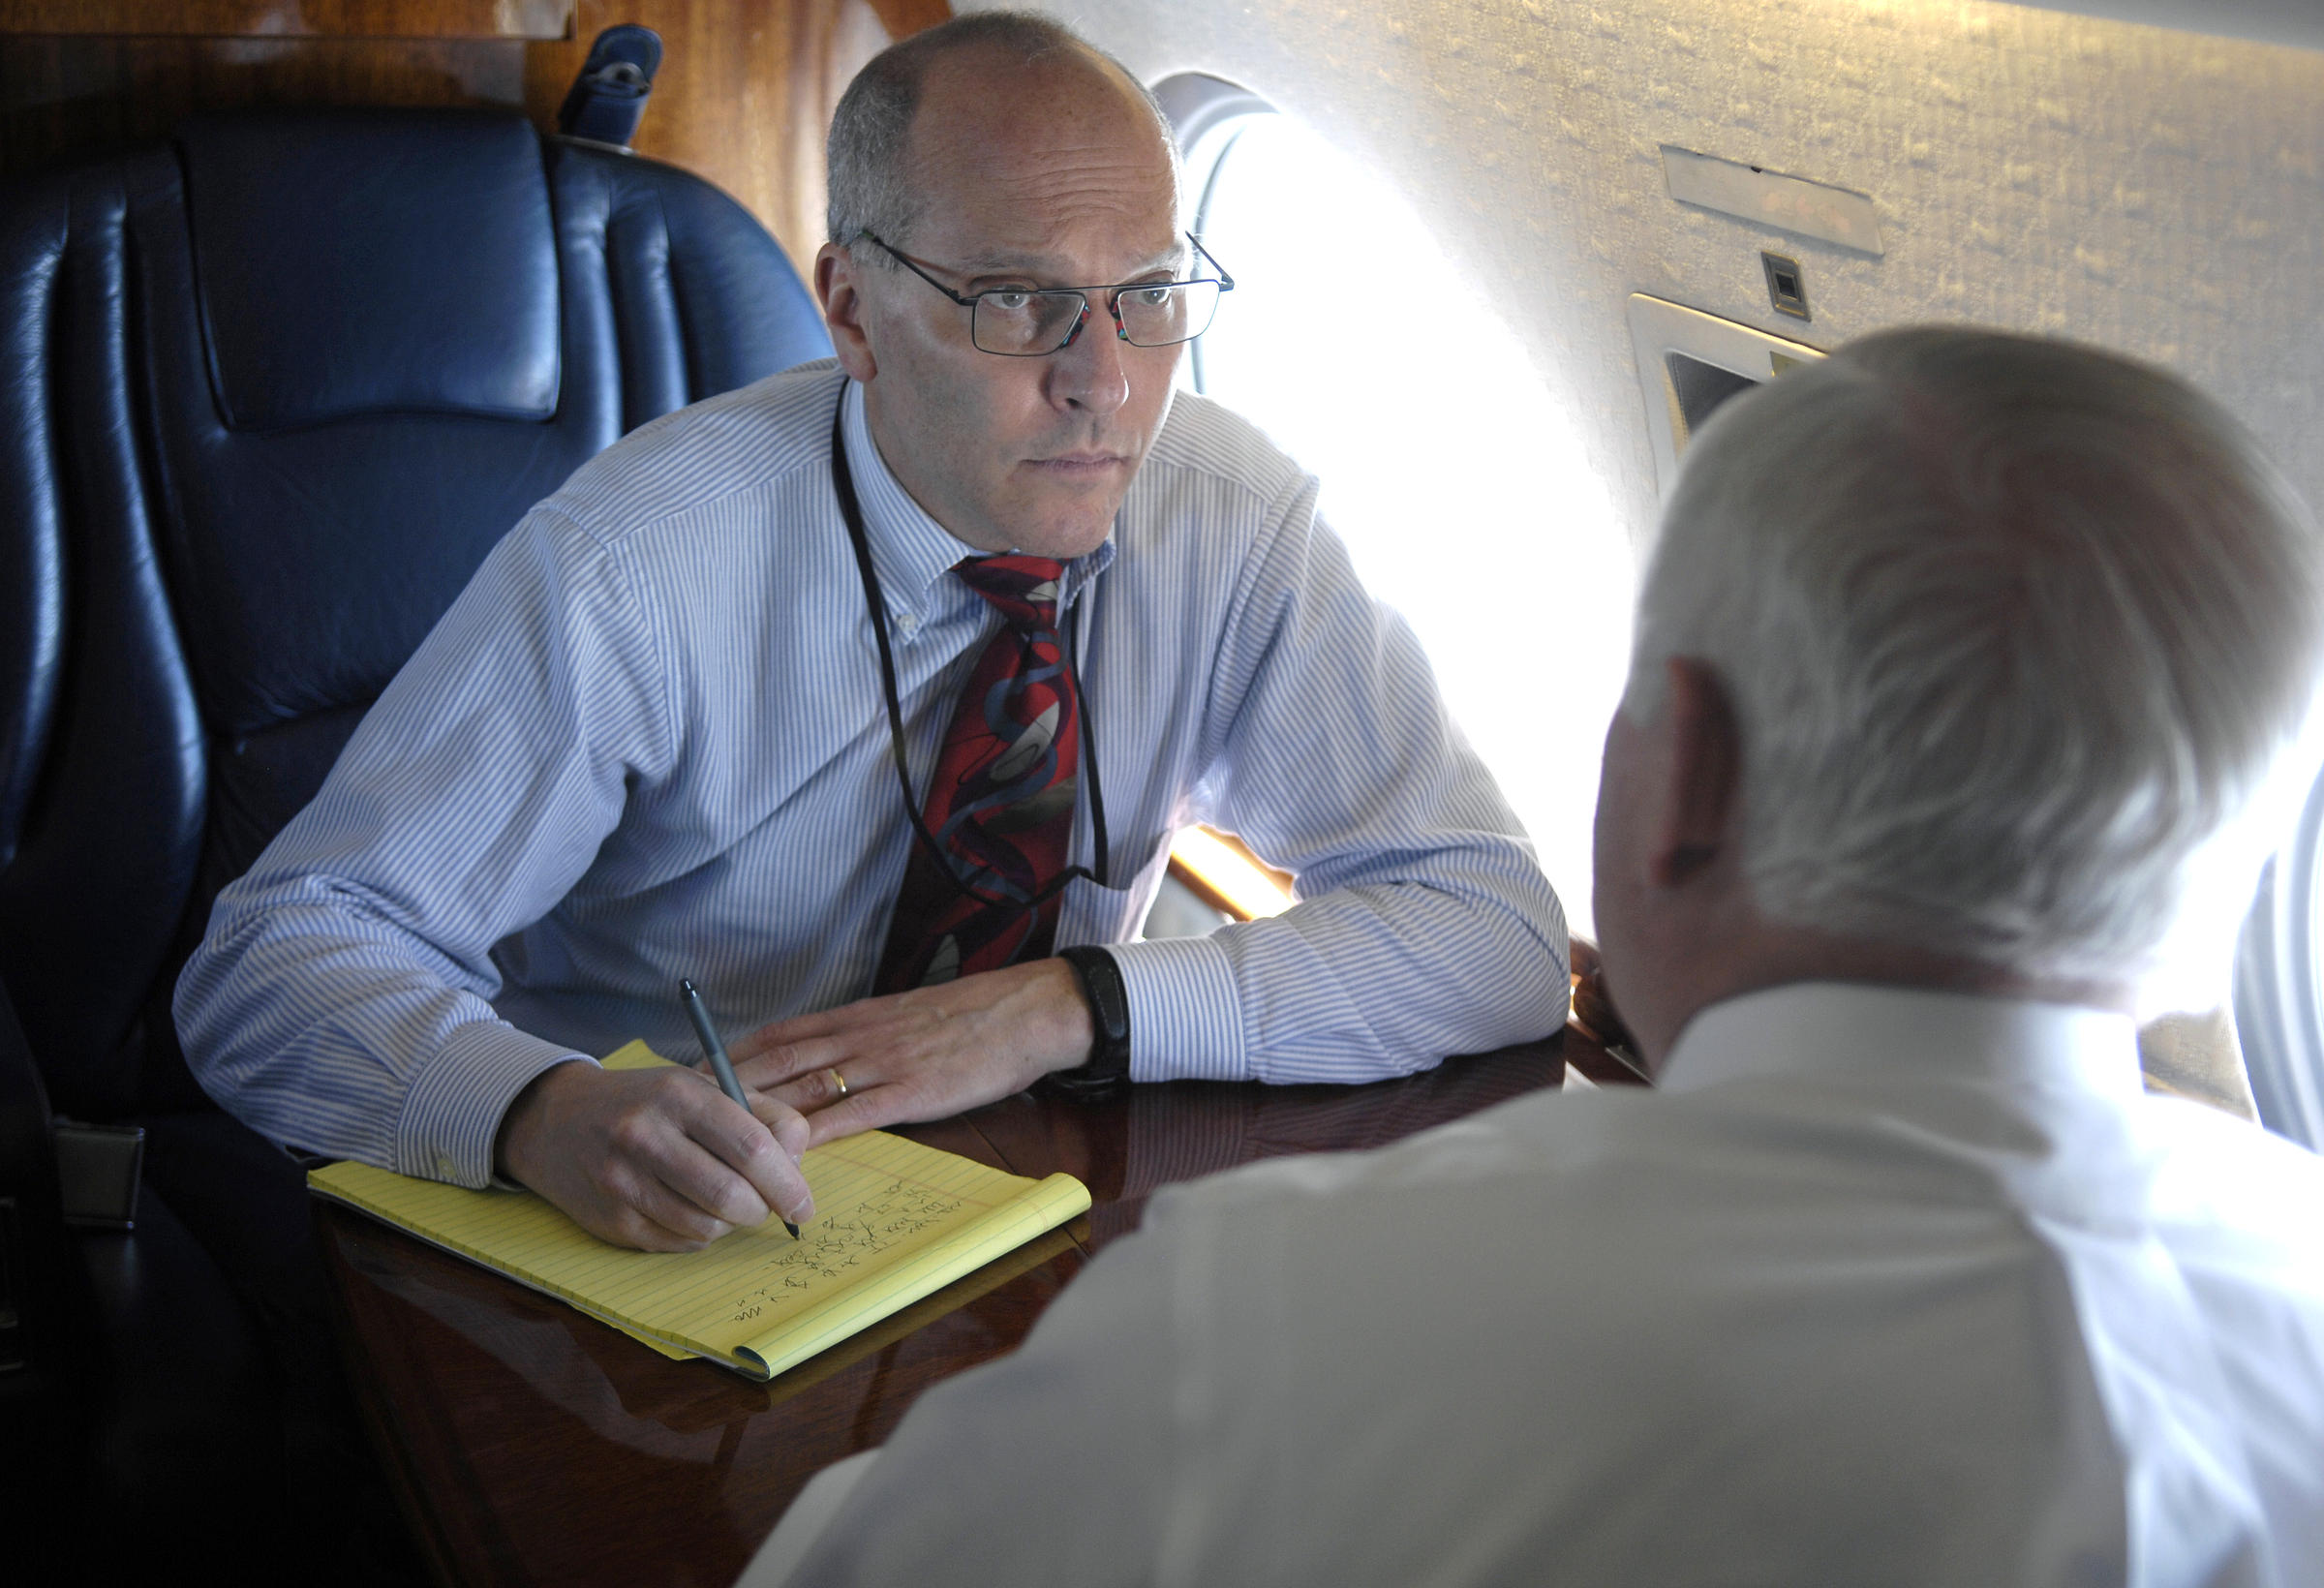 journalist thom shanker makes case for managing mitigating the new york times pentagon correspondent thom shanker interviews defense secretary robert gates aboard an aircraft headed for west point new york